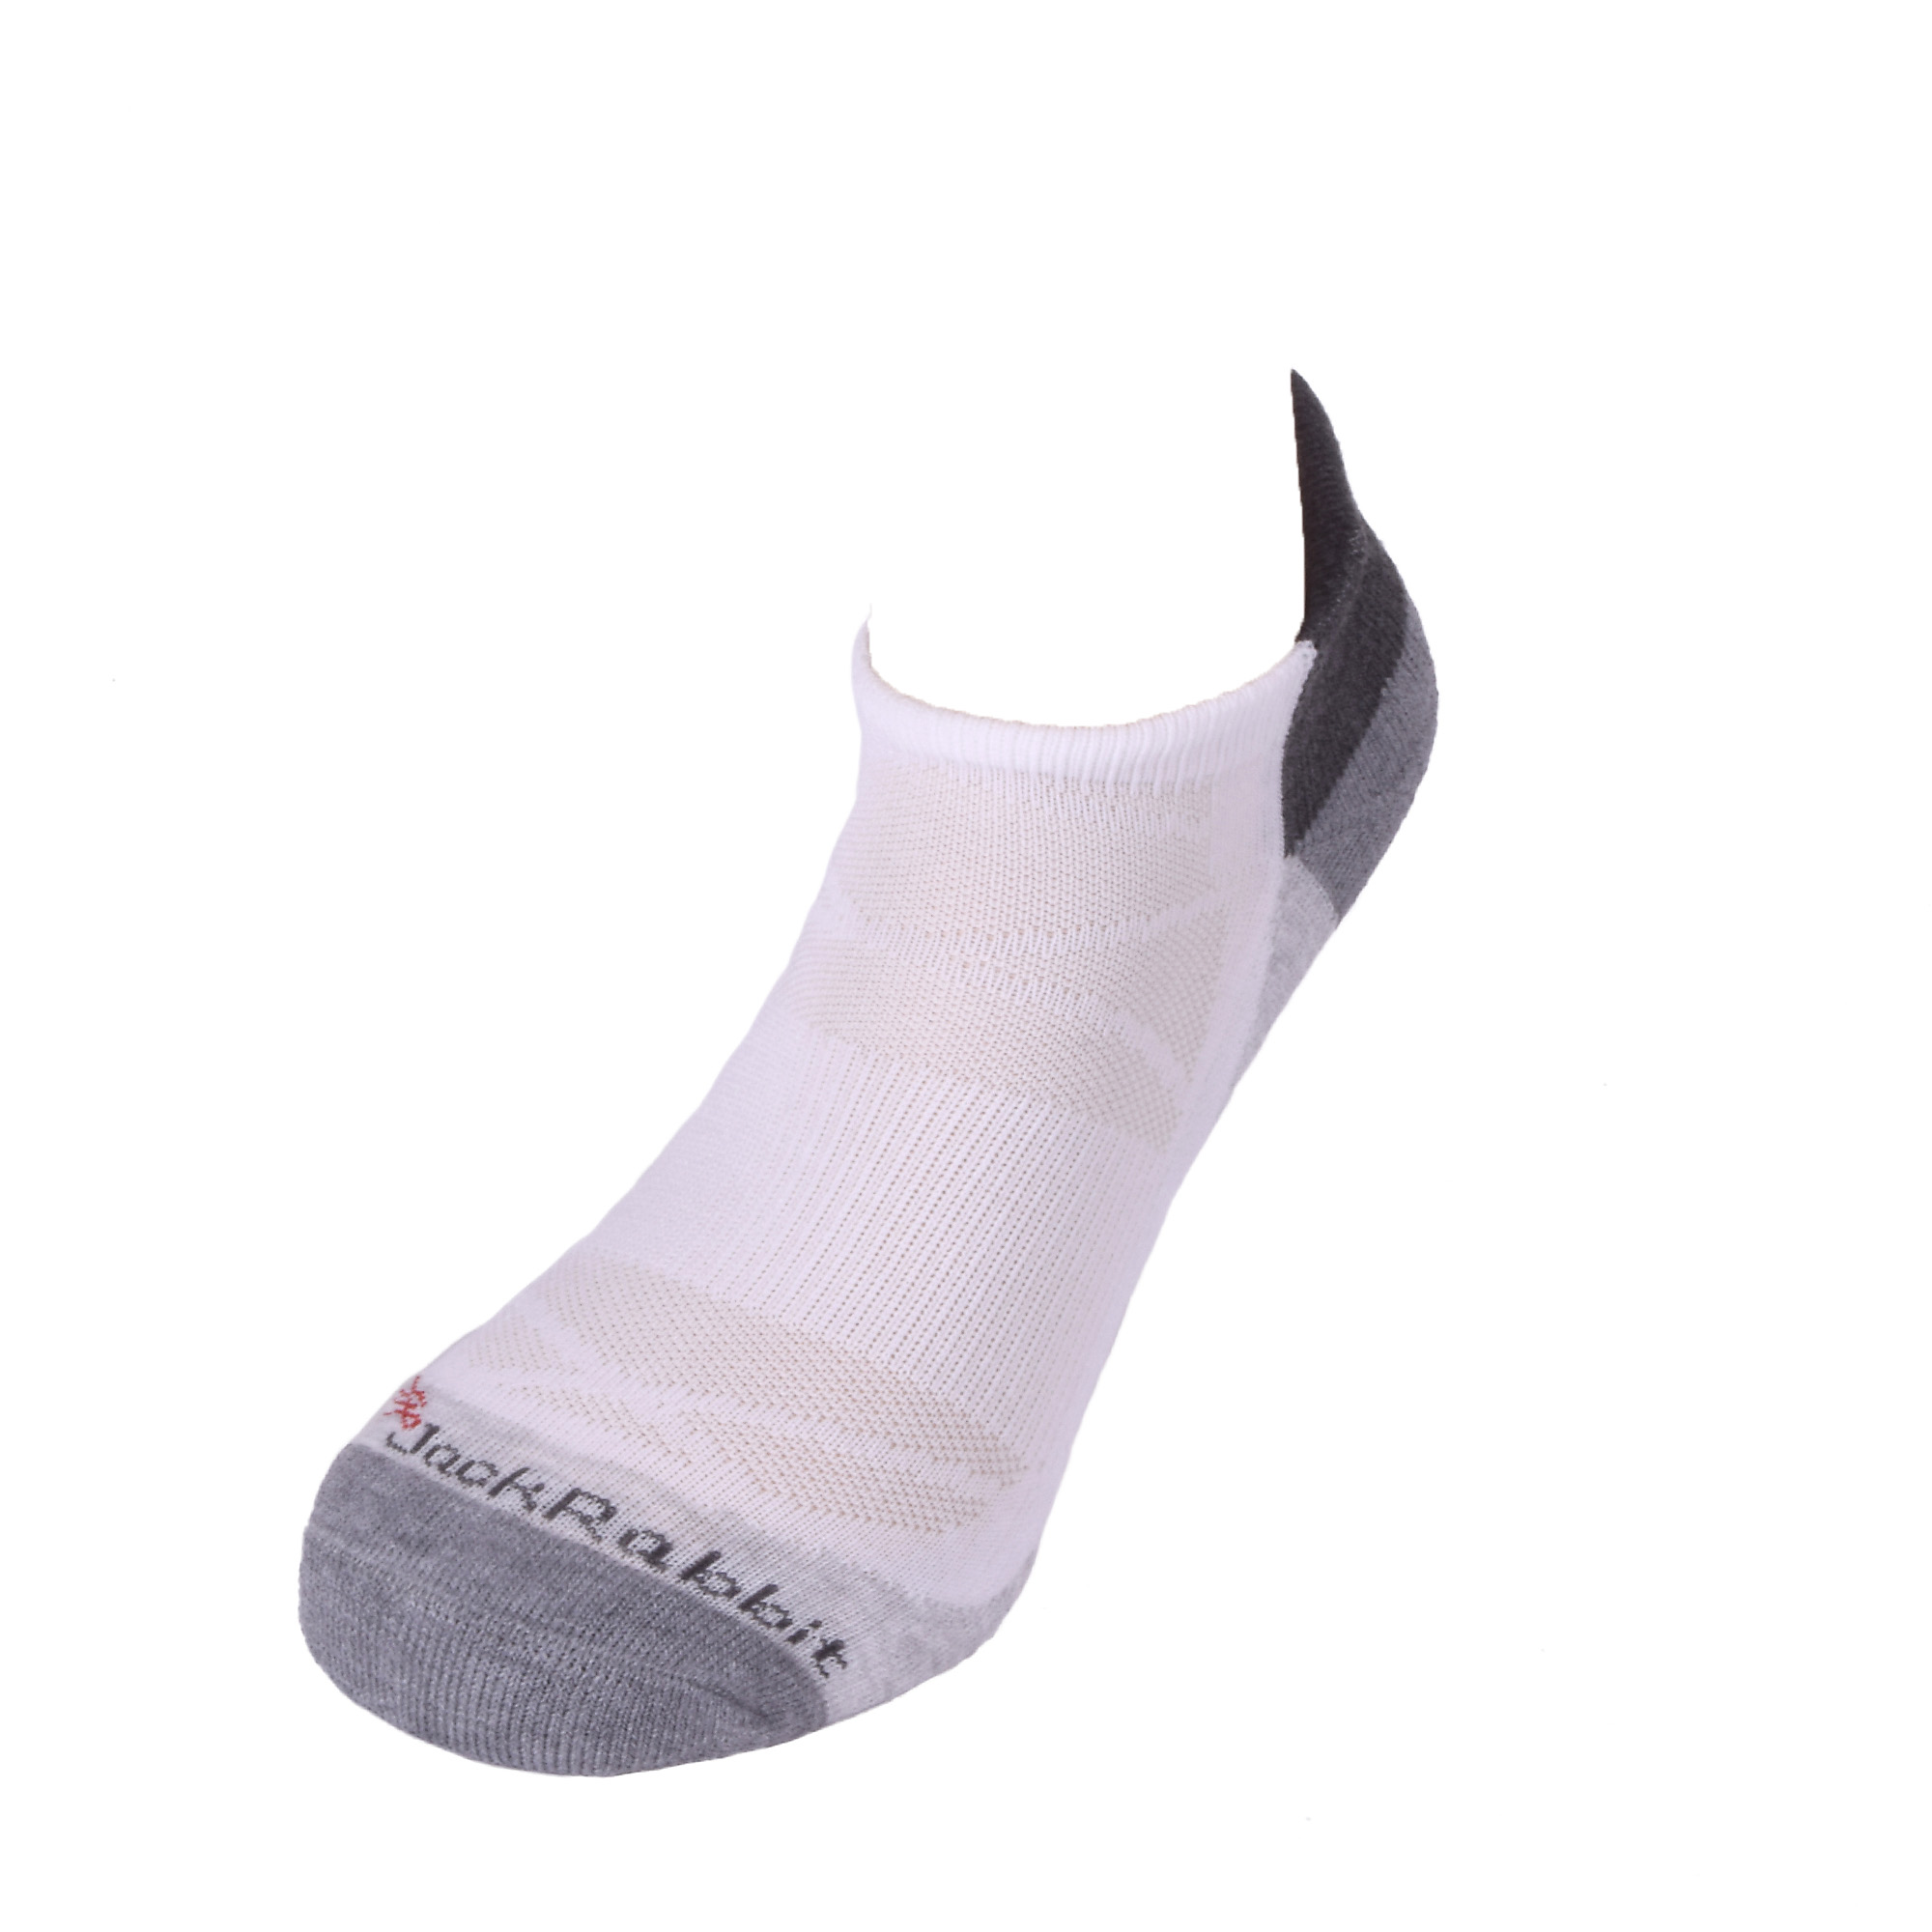 JackRabbit No Show Tab Cushion Performance Running Sock, , large, image 2